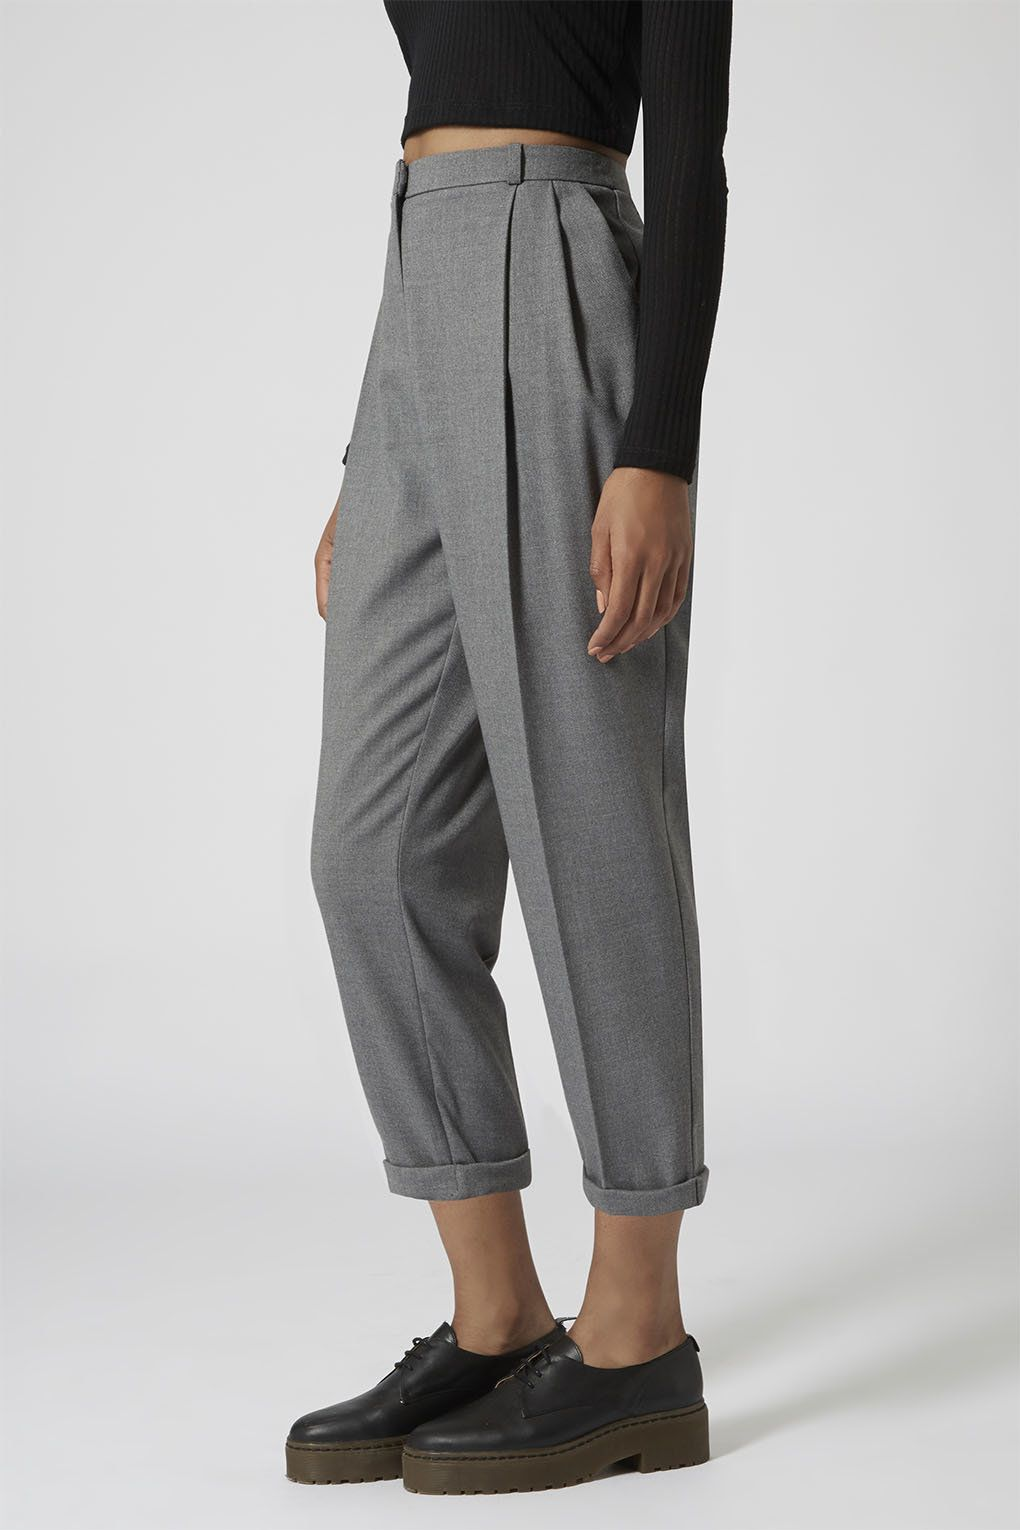 Flannel into dress  Flannel Mensy Crop Trousers  Trousers  Clothing  Topshop  site